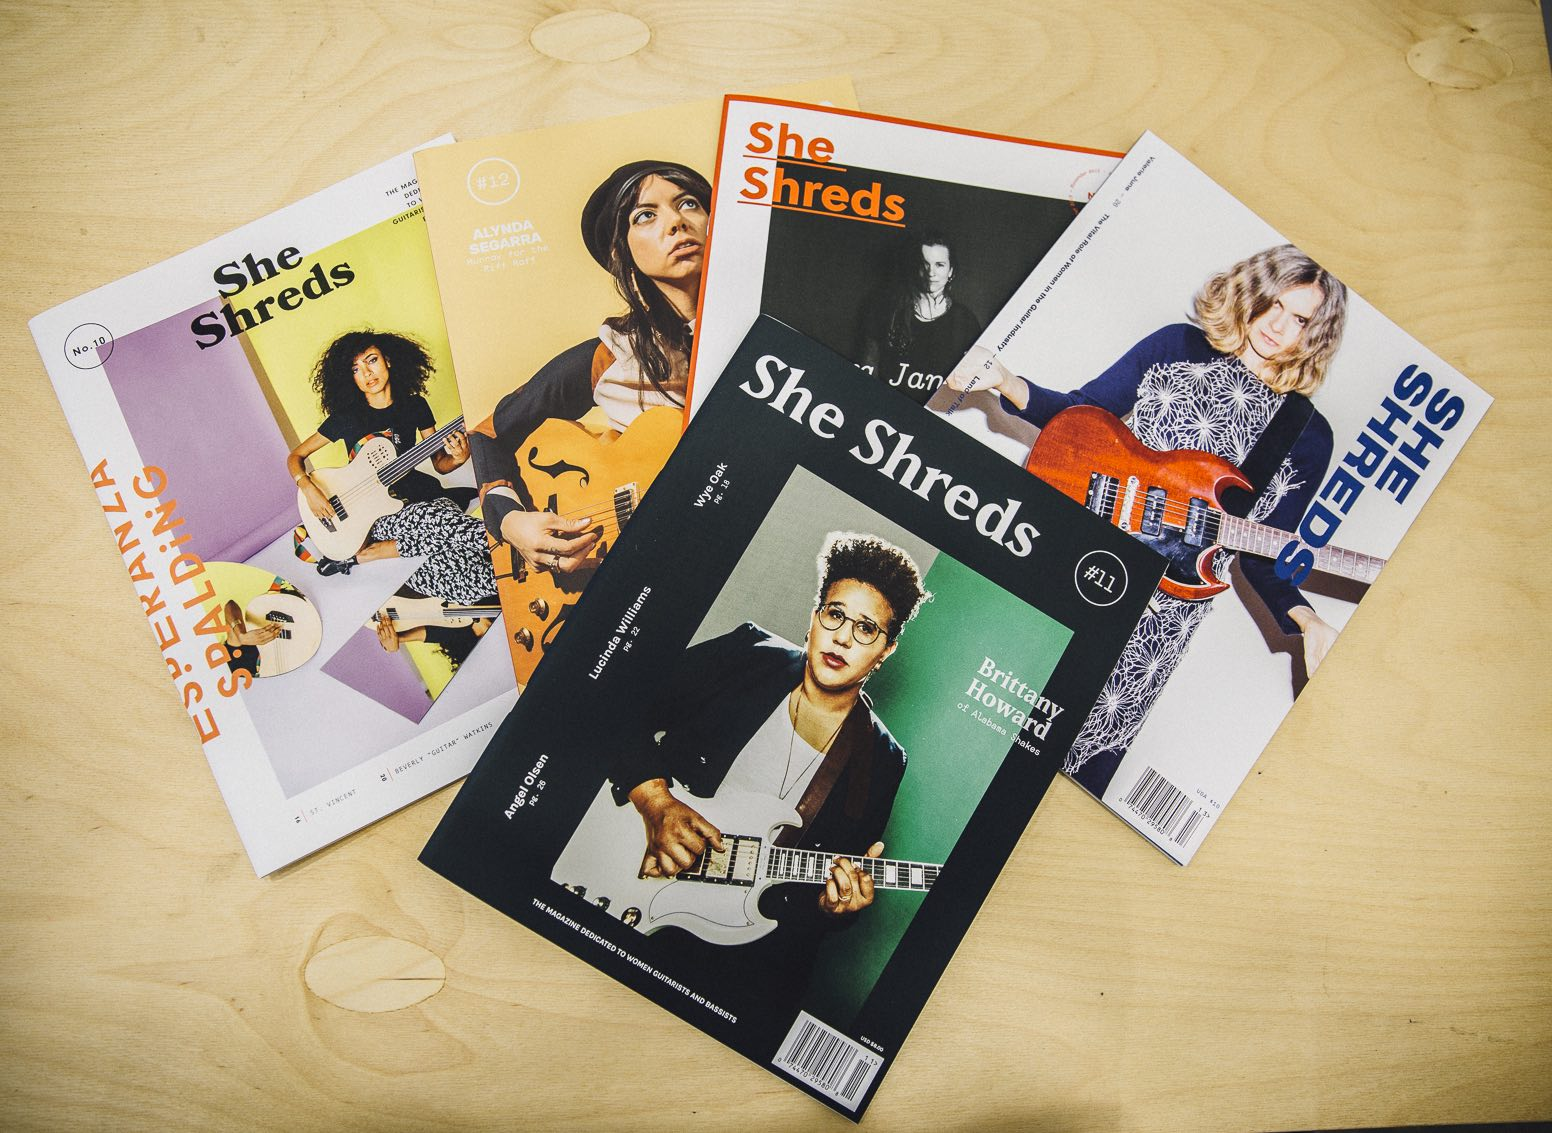 Past issues of She Shreds